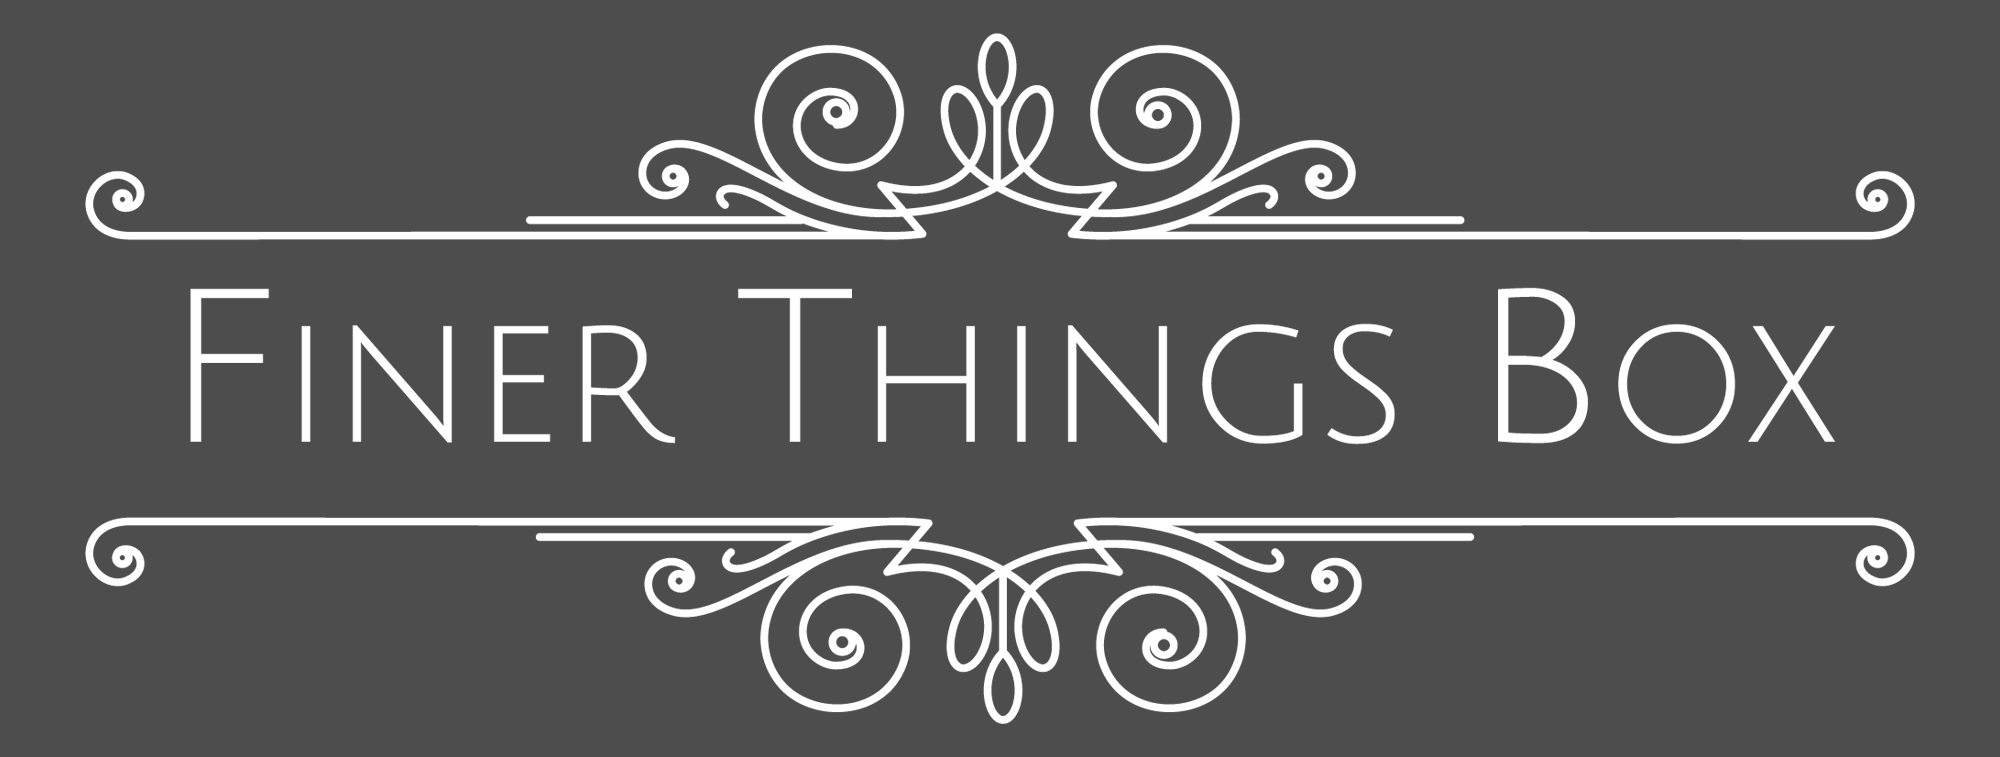 Today we're speaking with Cara, co-founder of Finer Things Box, a subscription-based box full of wonderful history and cultural items from around the world! mompreneuradvice.com